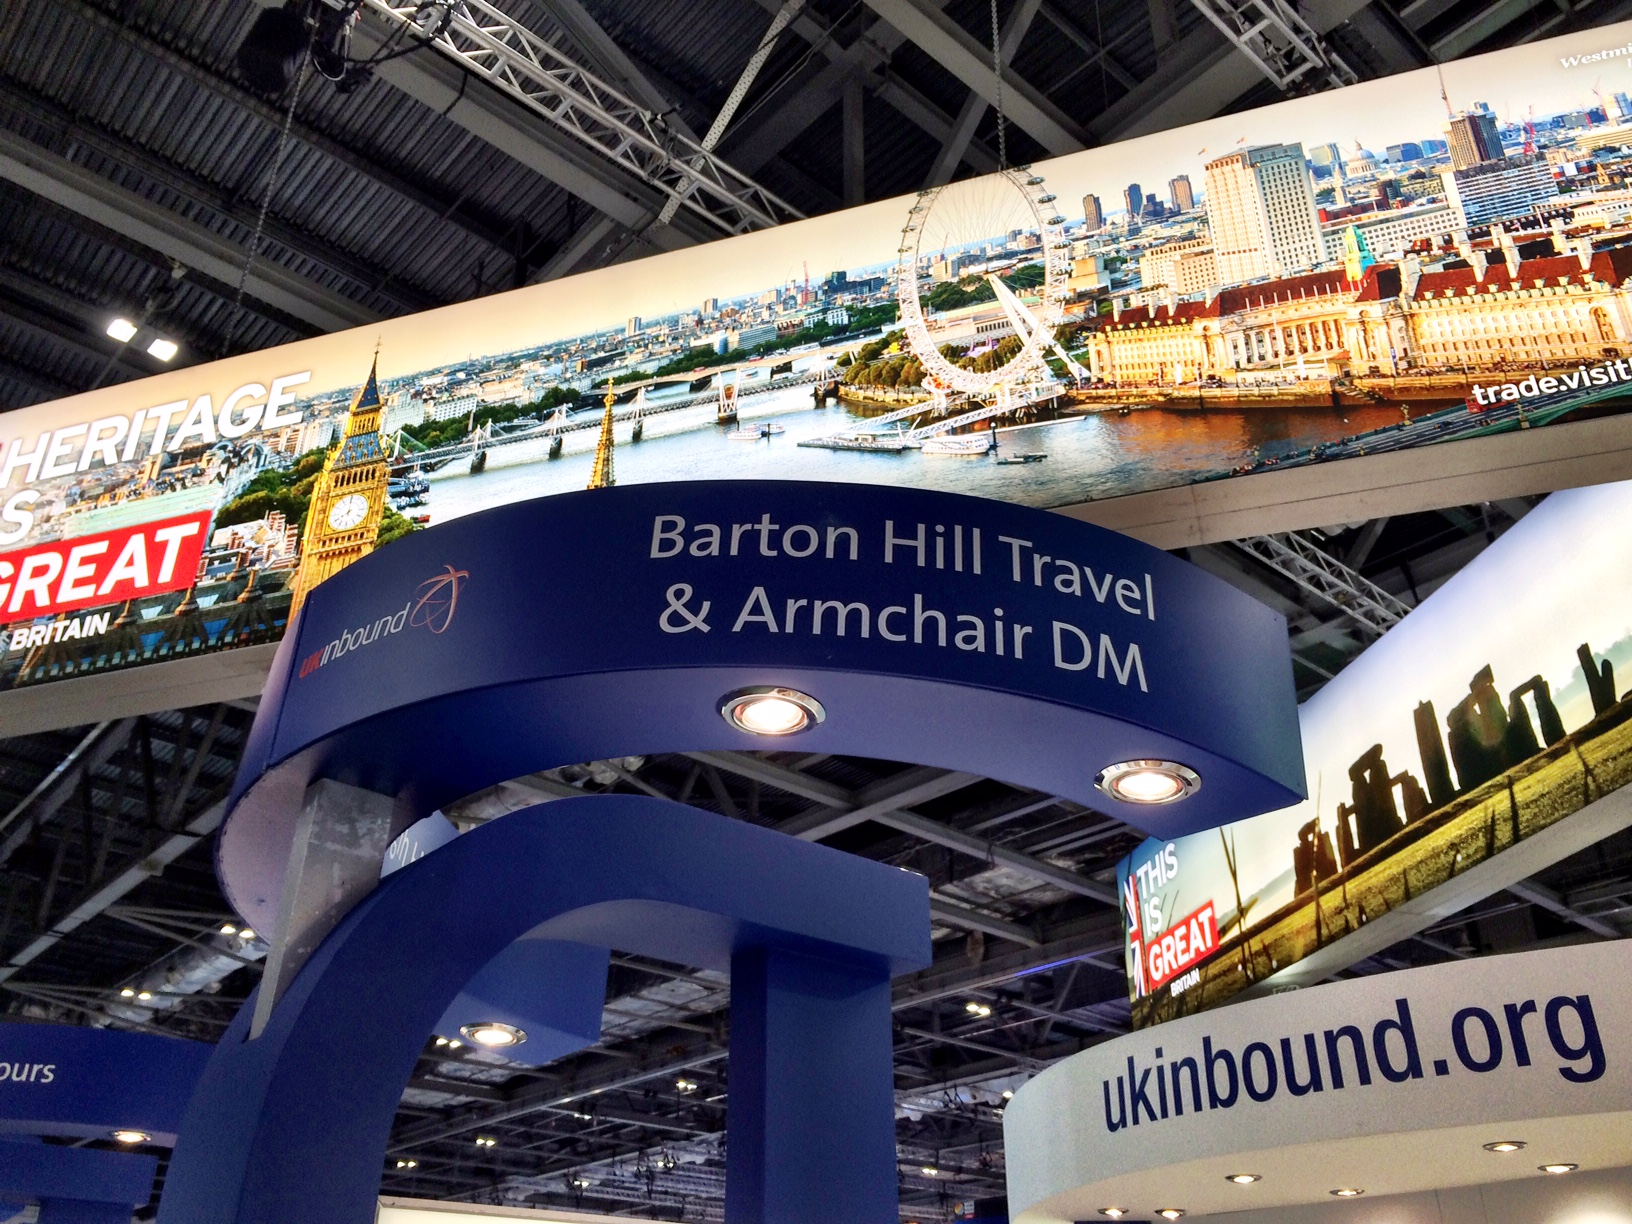 UK Inbound stand at WTM 2015